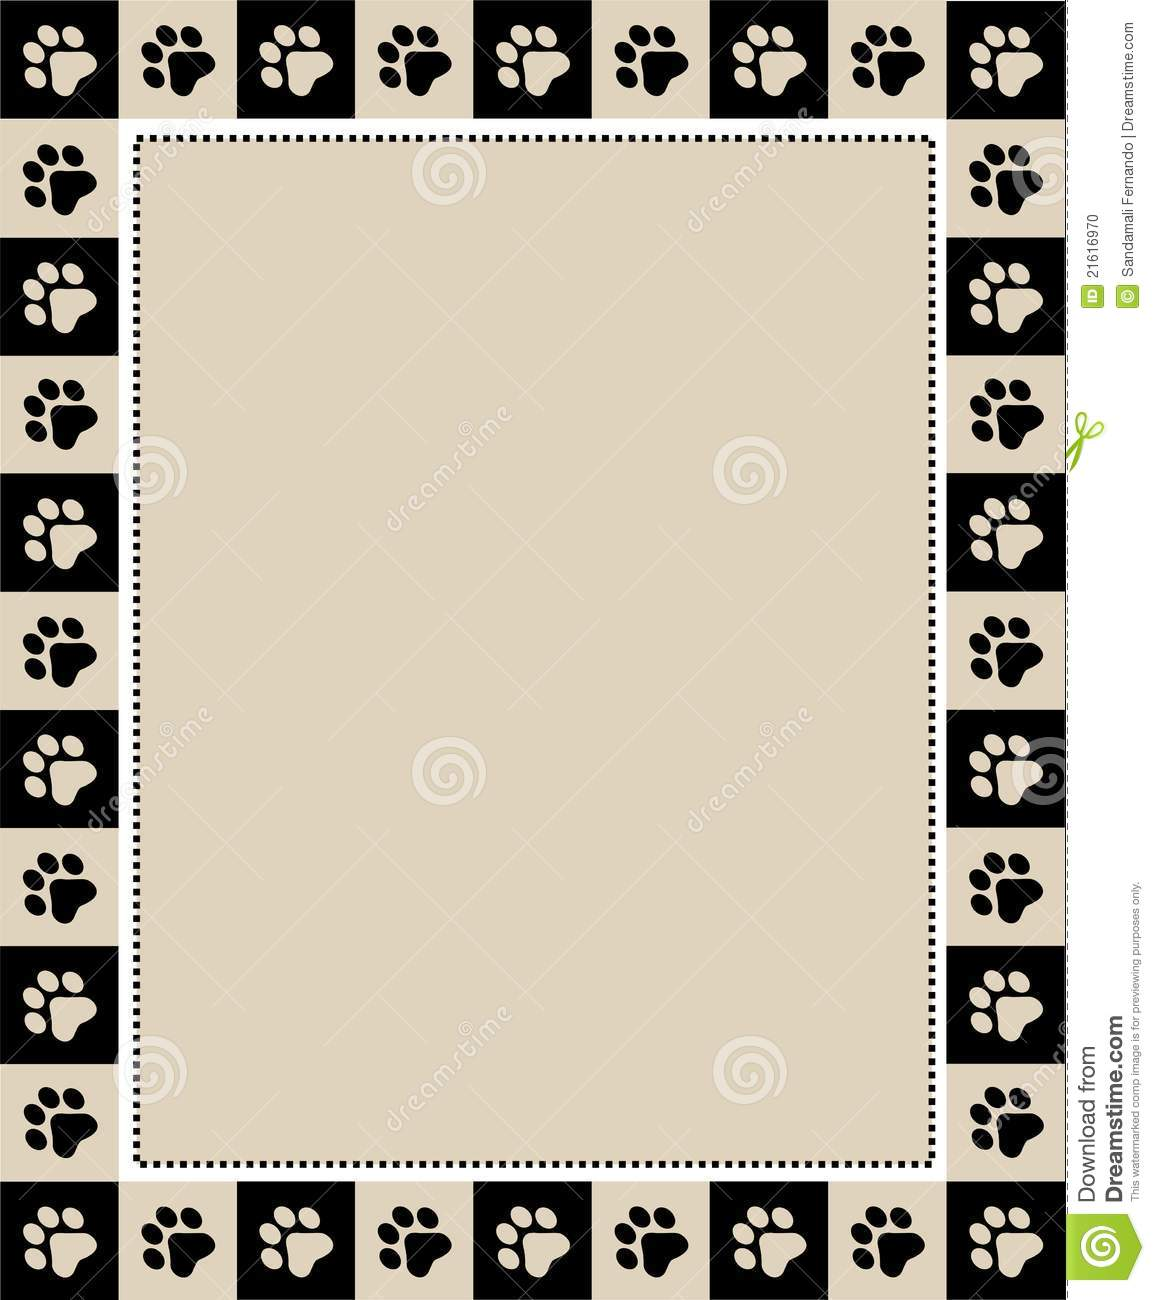 Cute pets [dogs and cats] paw prints border / frame. Dog Border